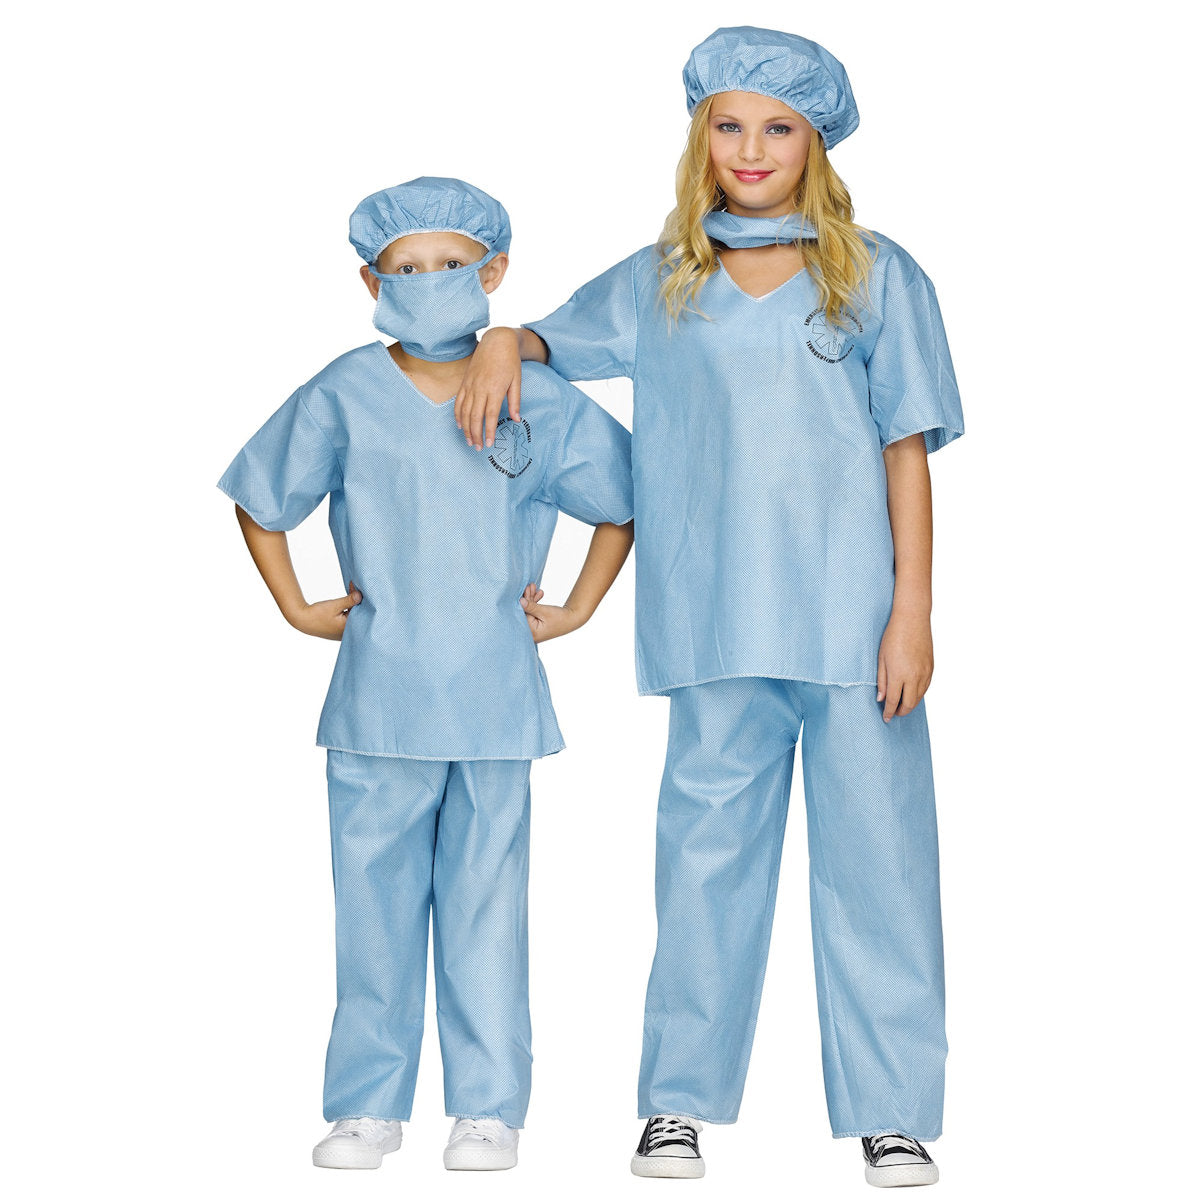 Surgeon Doctor Child Costume with cap and face mask